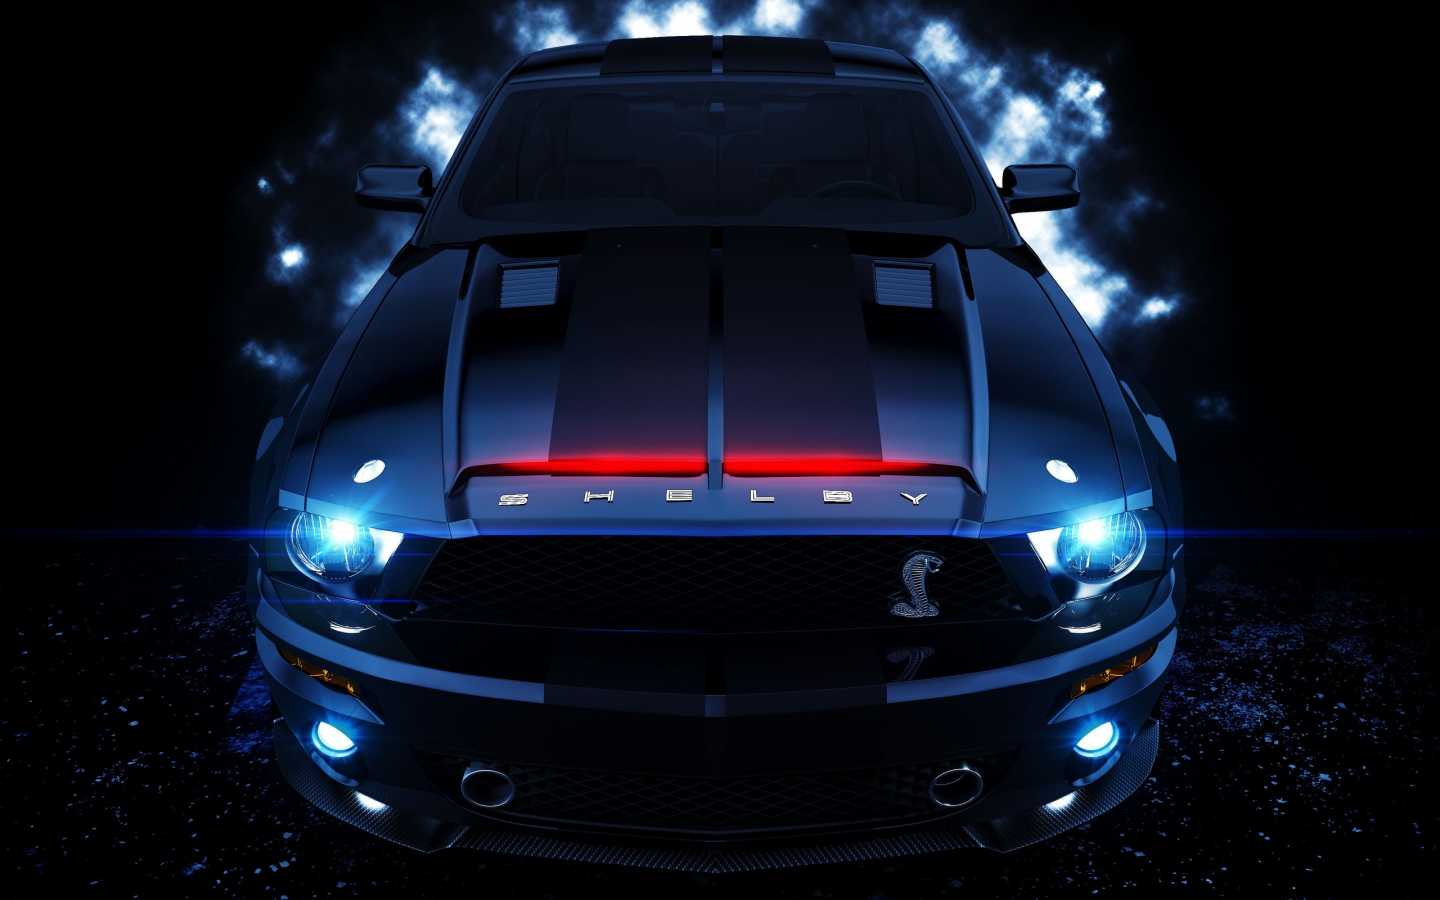 Amazing Shelby for 1440 x 900 widescreen resolution